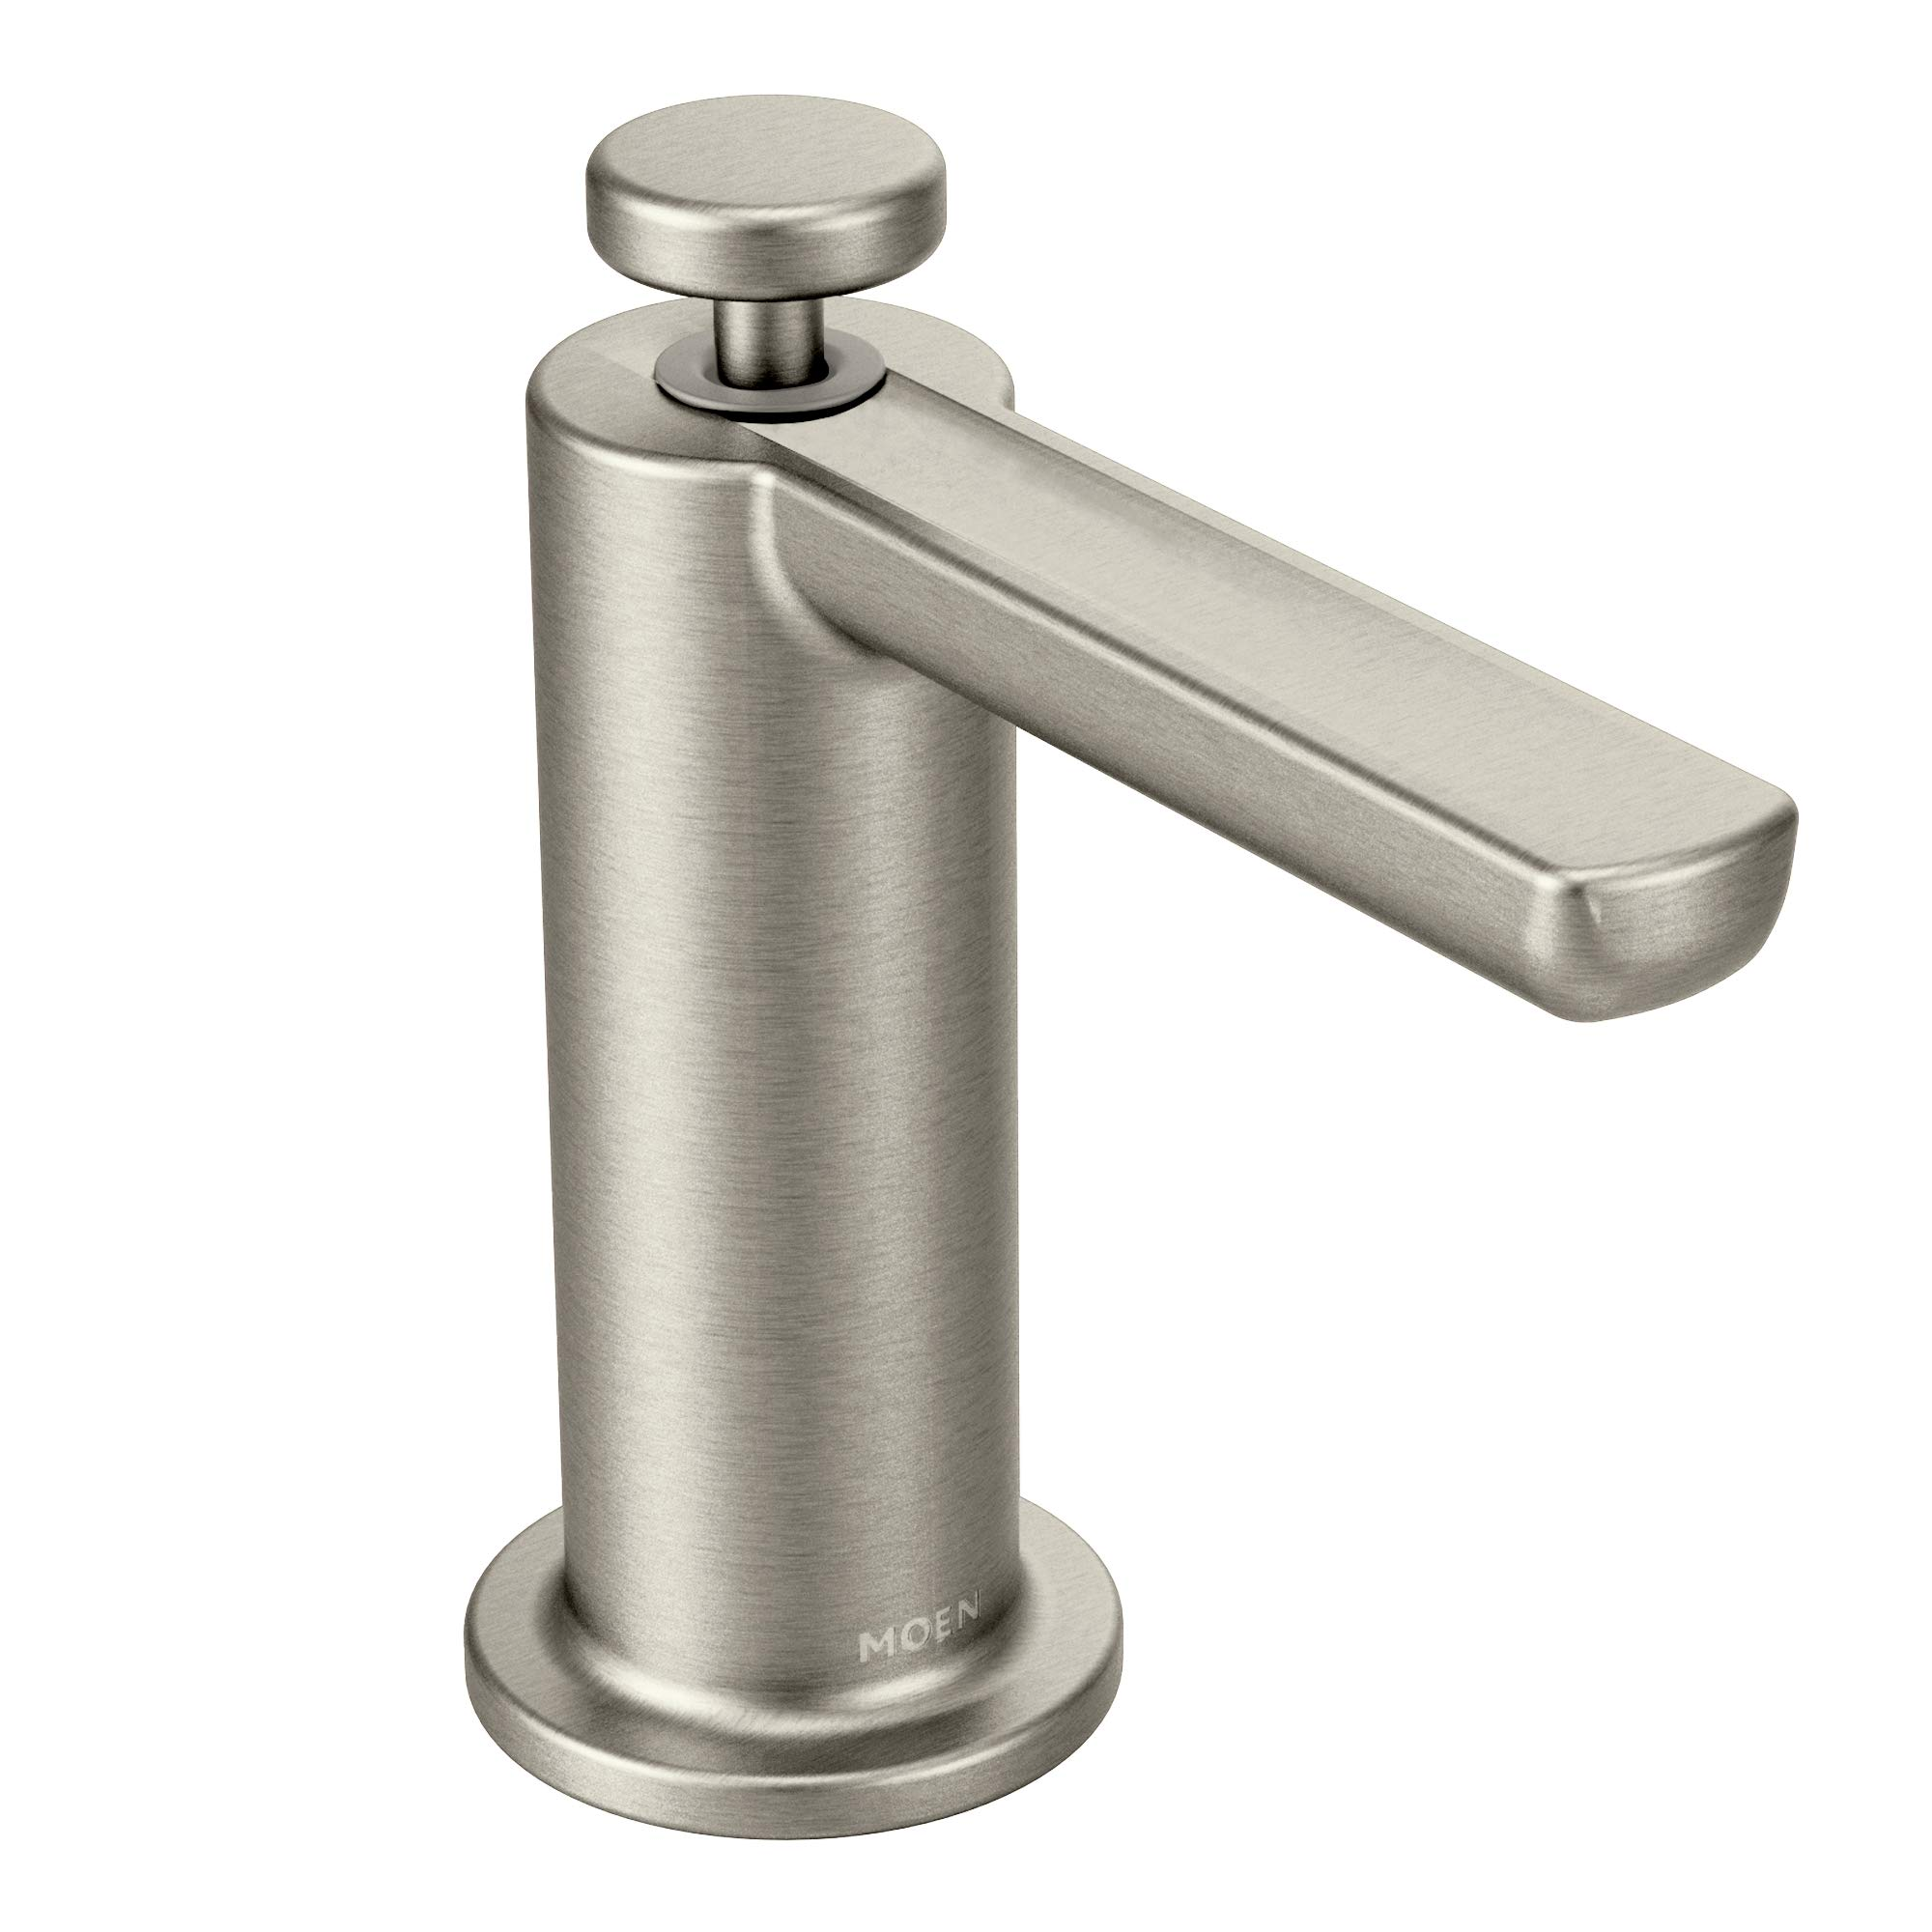 Moen S3947SRS Modern Deck Mounted Kitchen Soap Dispenser with Above the Sink Refillable Bottle, Spot Resist Stainless